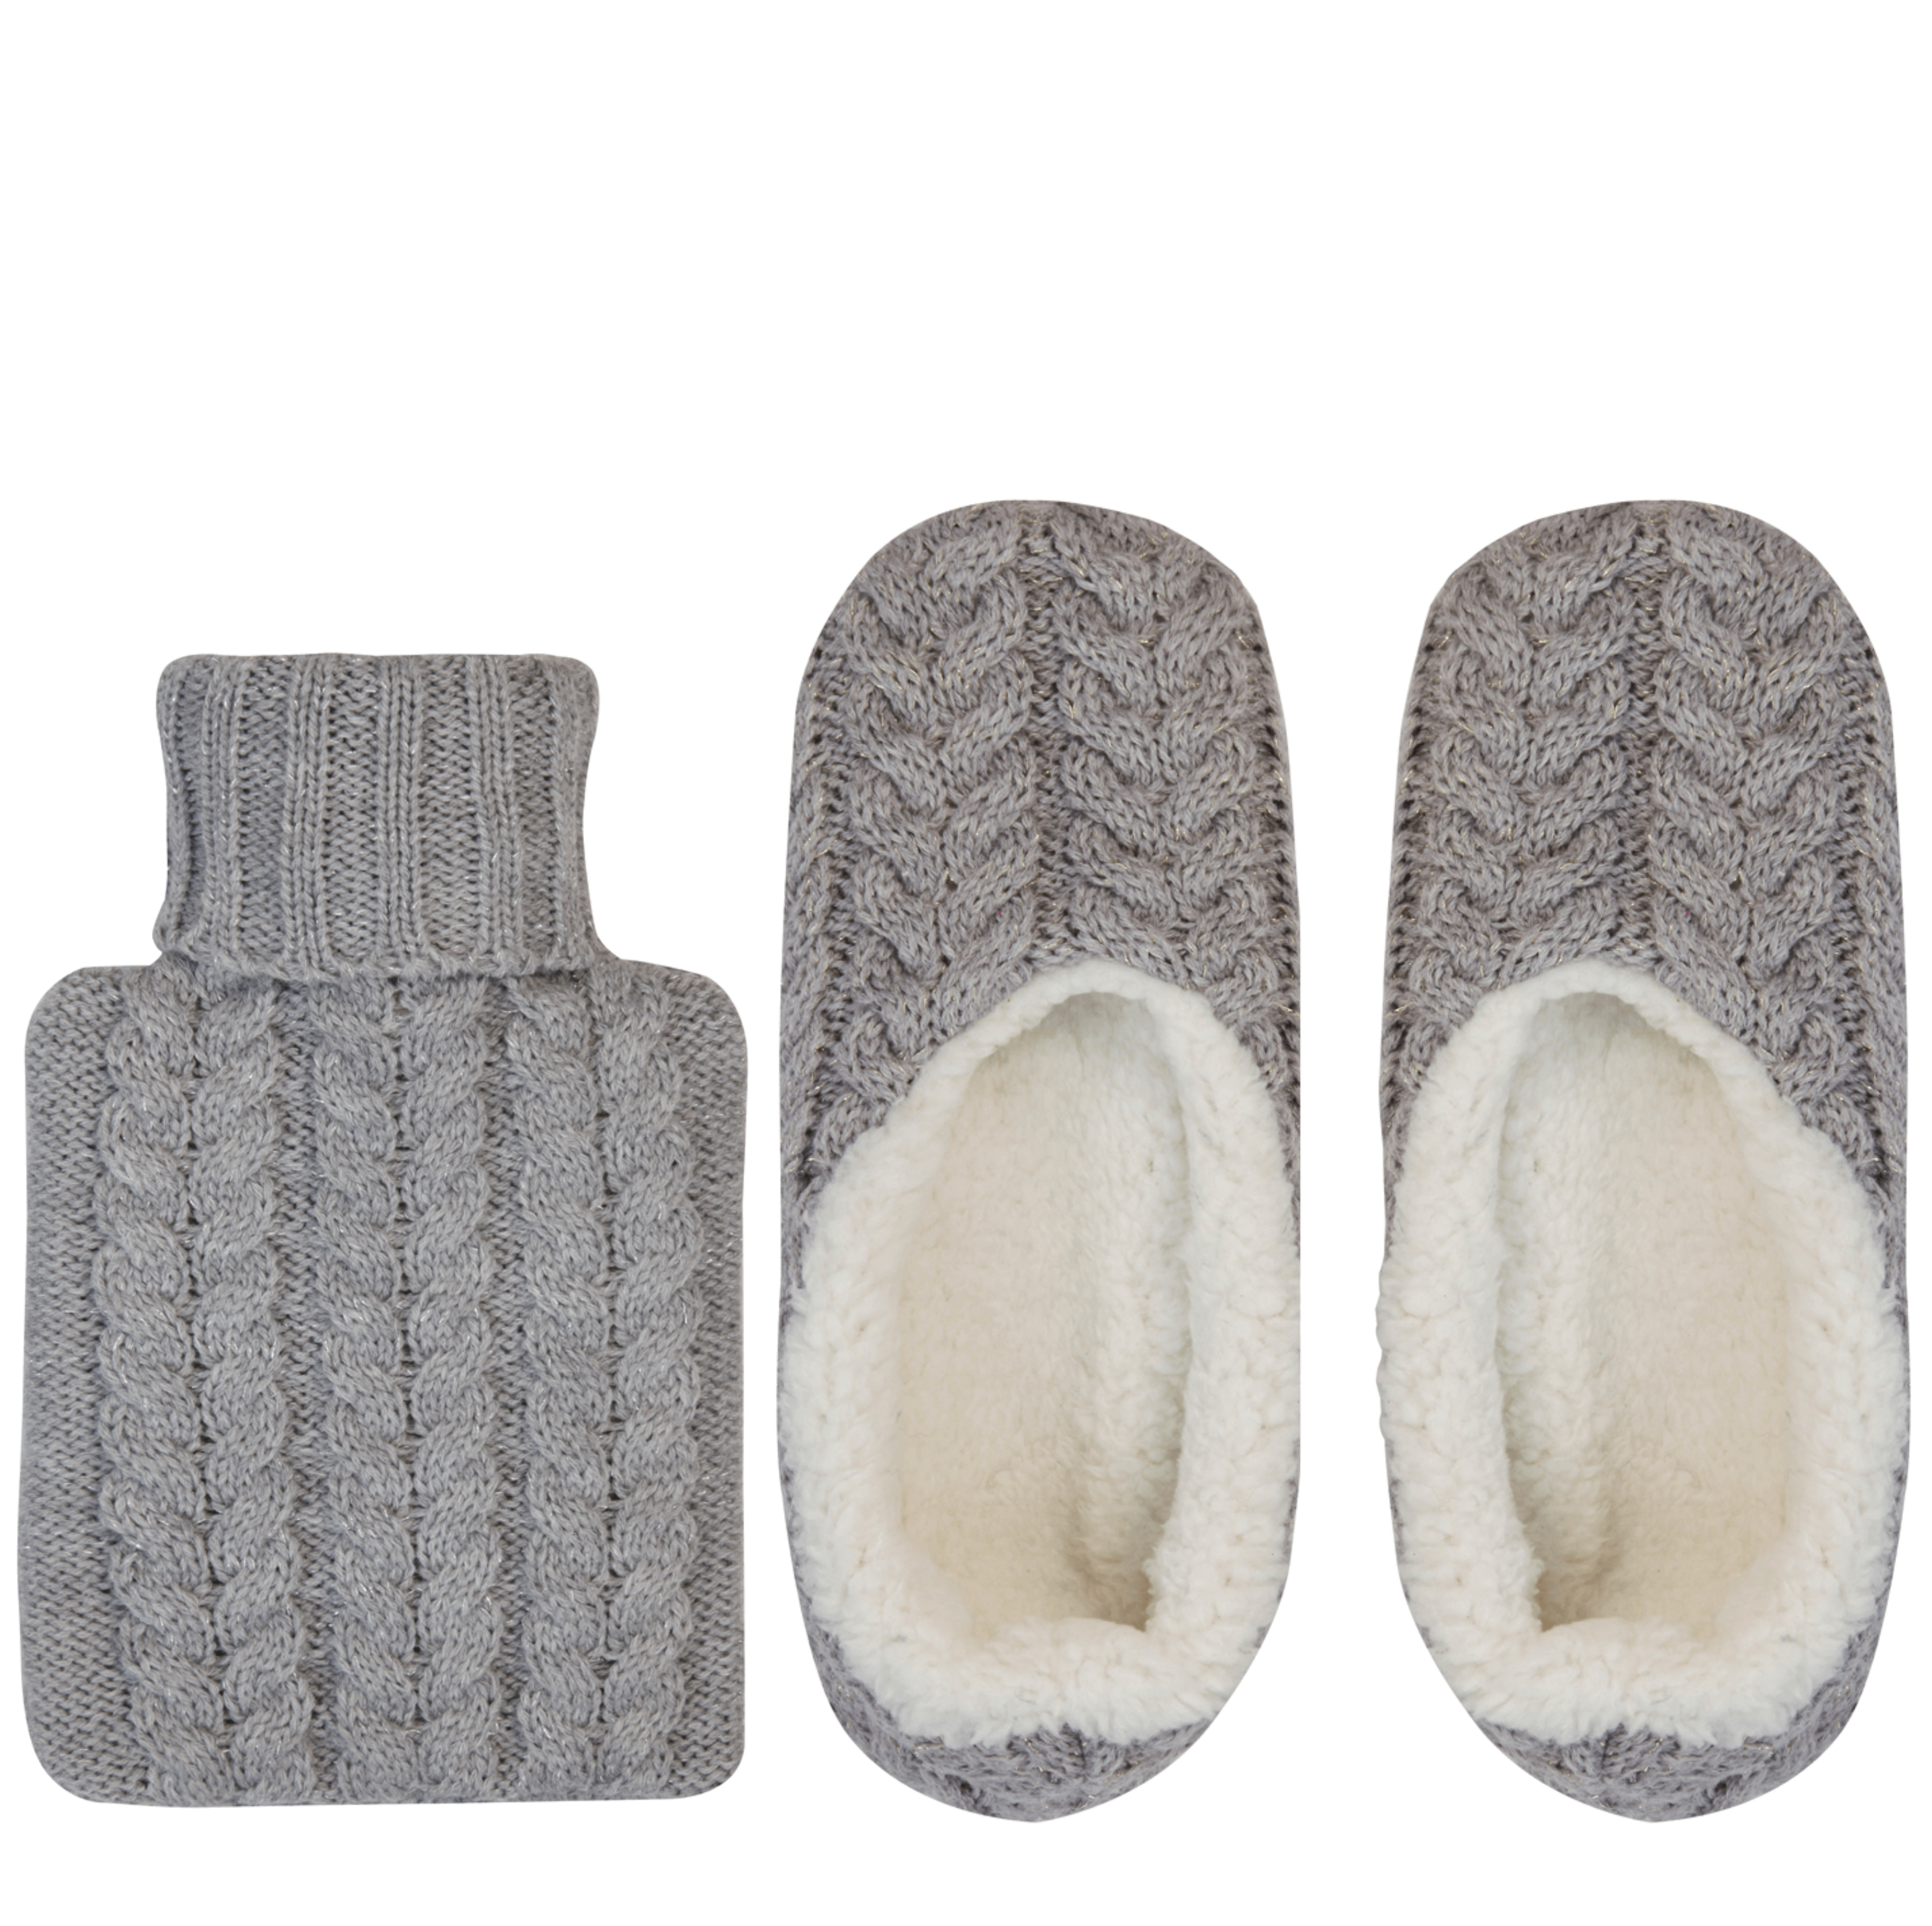 Aroma Home Mini Knitted Hot Water Bottle(500mn)|Cosy Slippers|Grey|Gift Set|New|